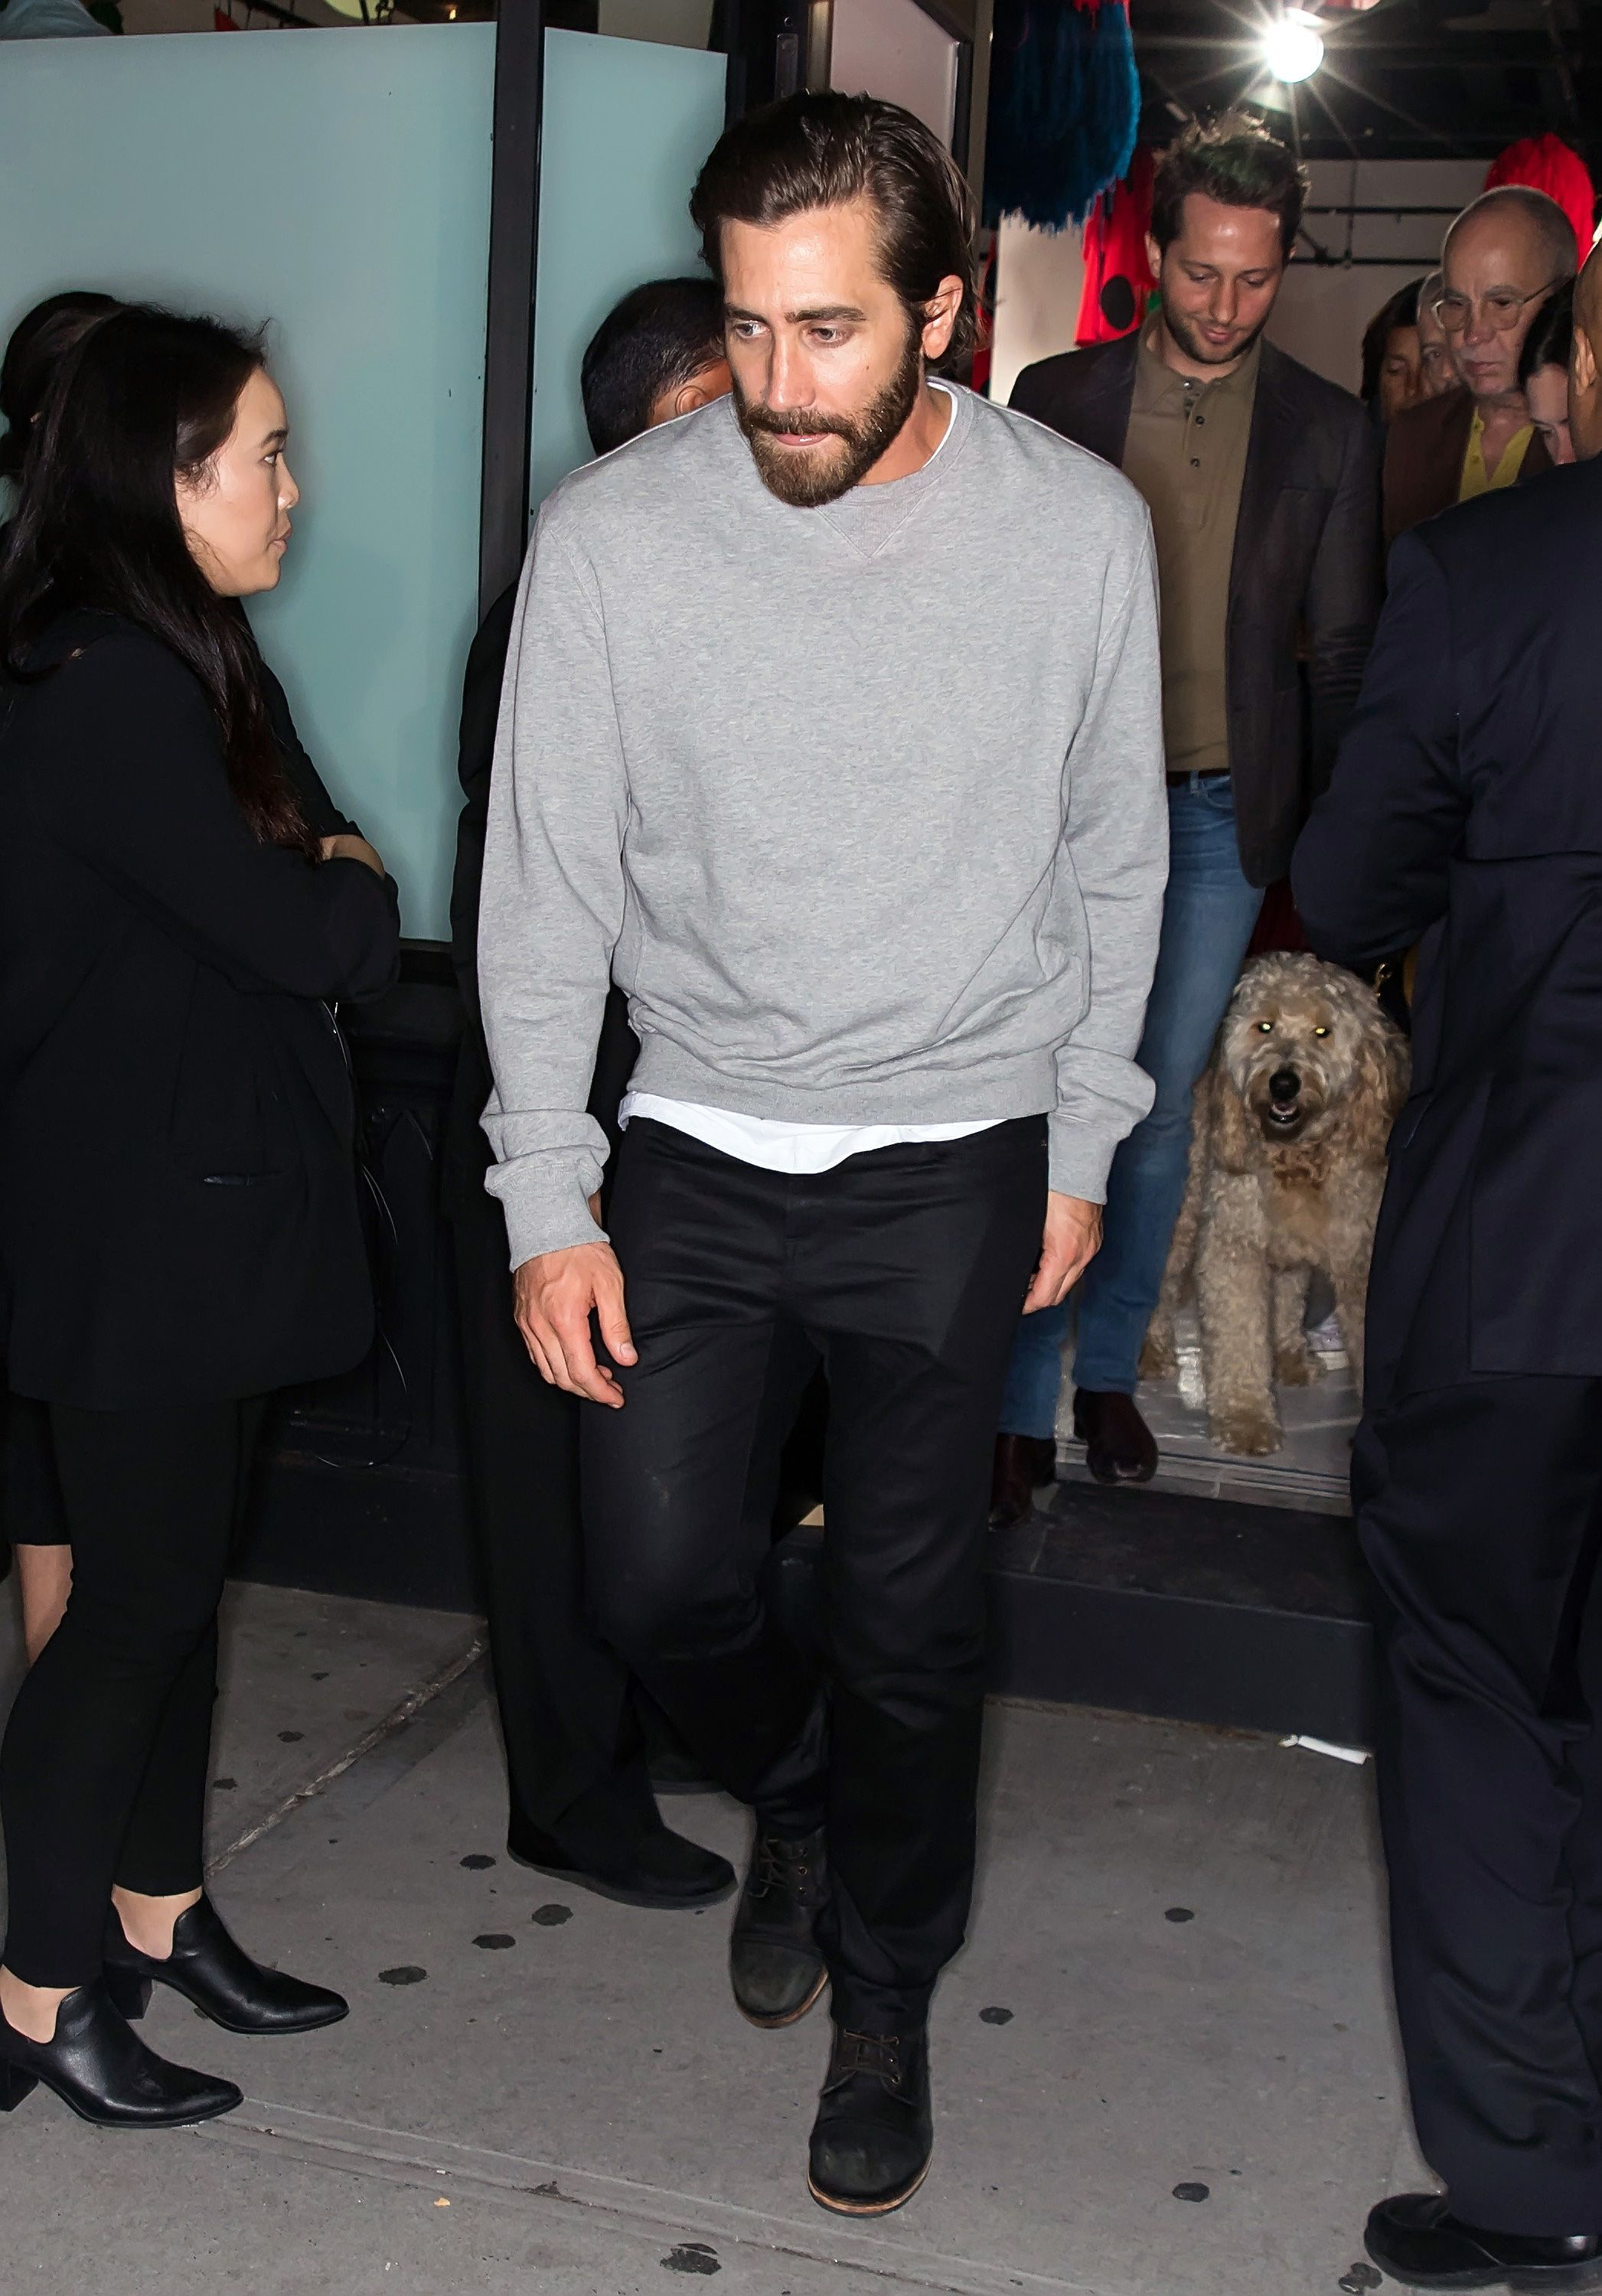 Jake Gyllenhaal Just Proved The Power Of A Great Crewneck